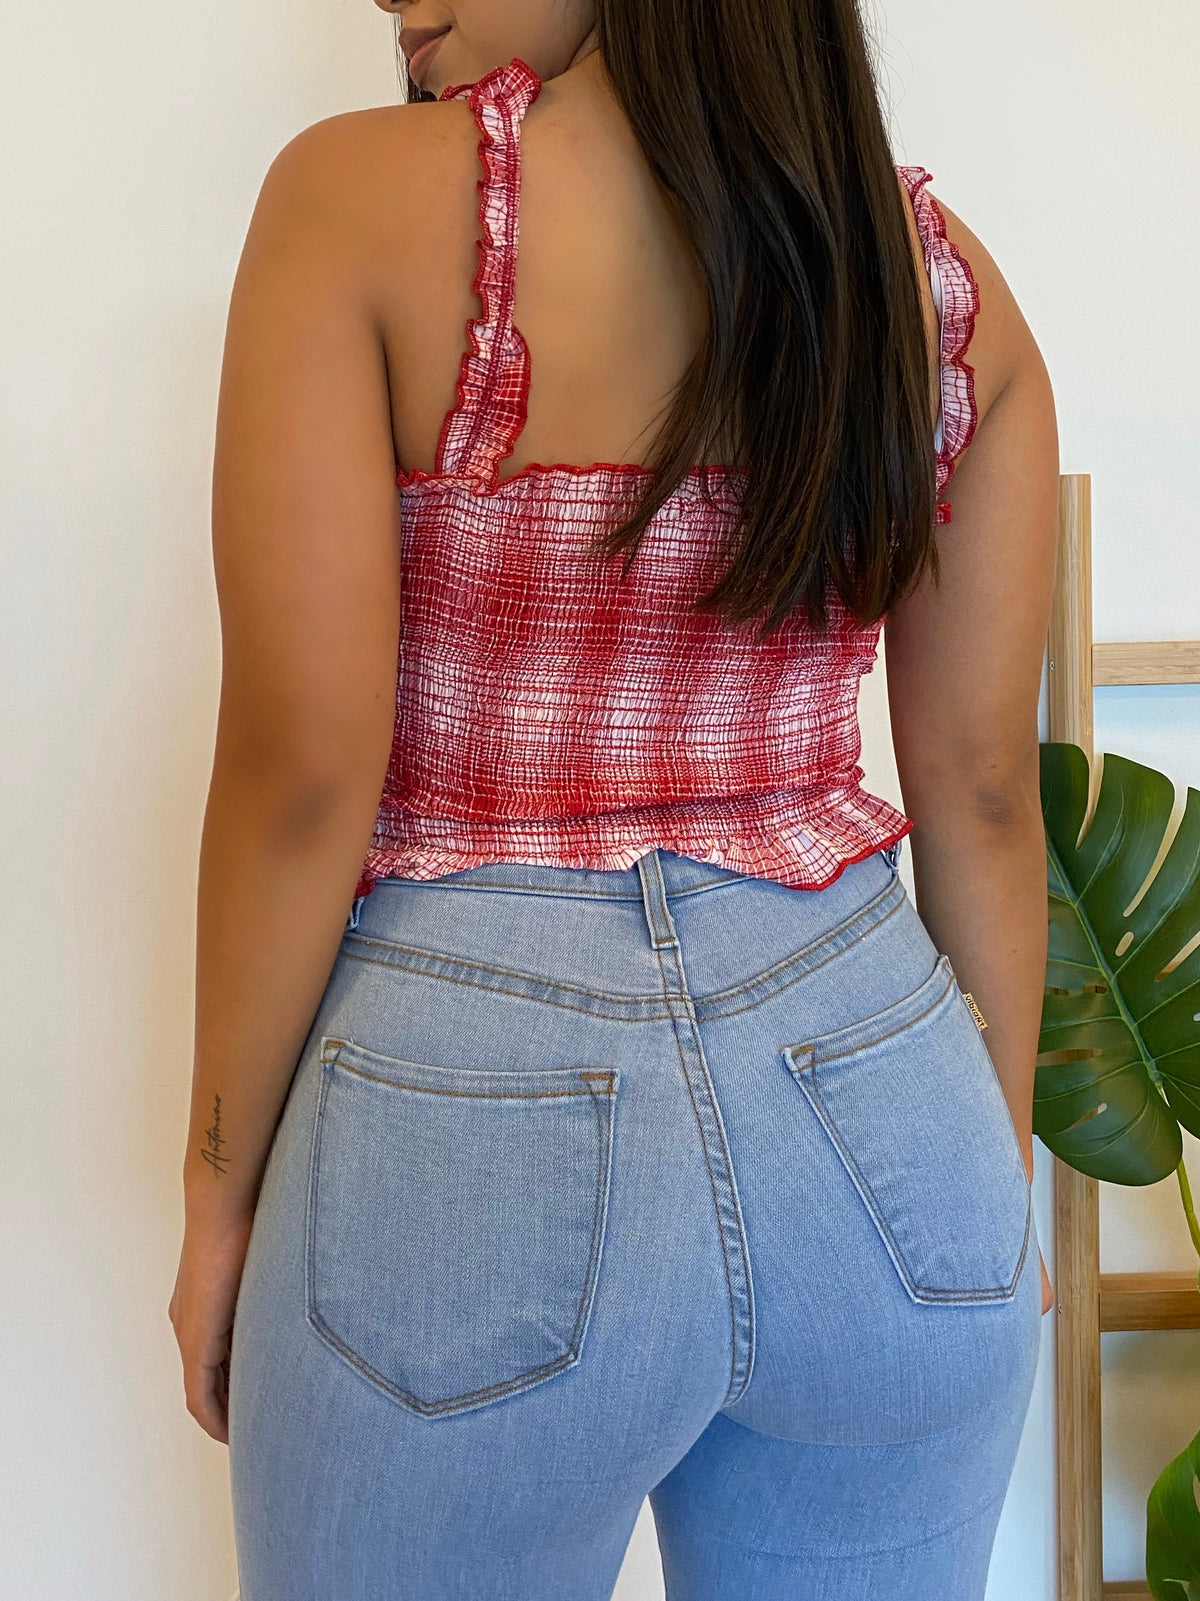 red and white crop top, ruffled straps, straightline